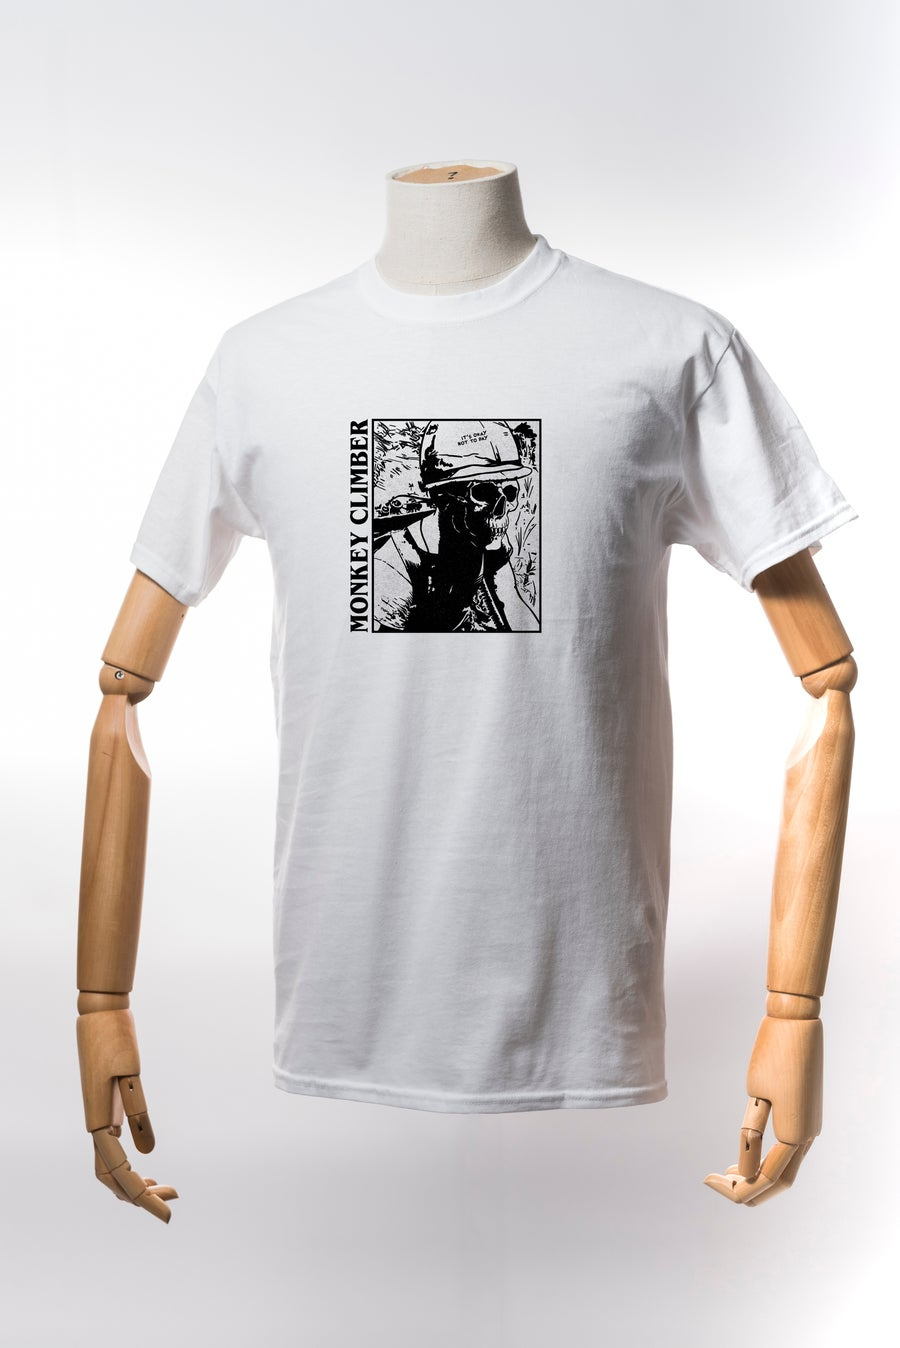 Image of Monkey Climber Soldier G shirt I White